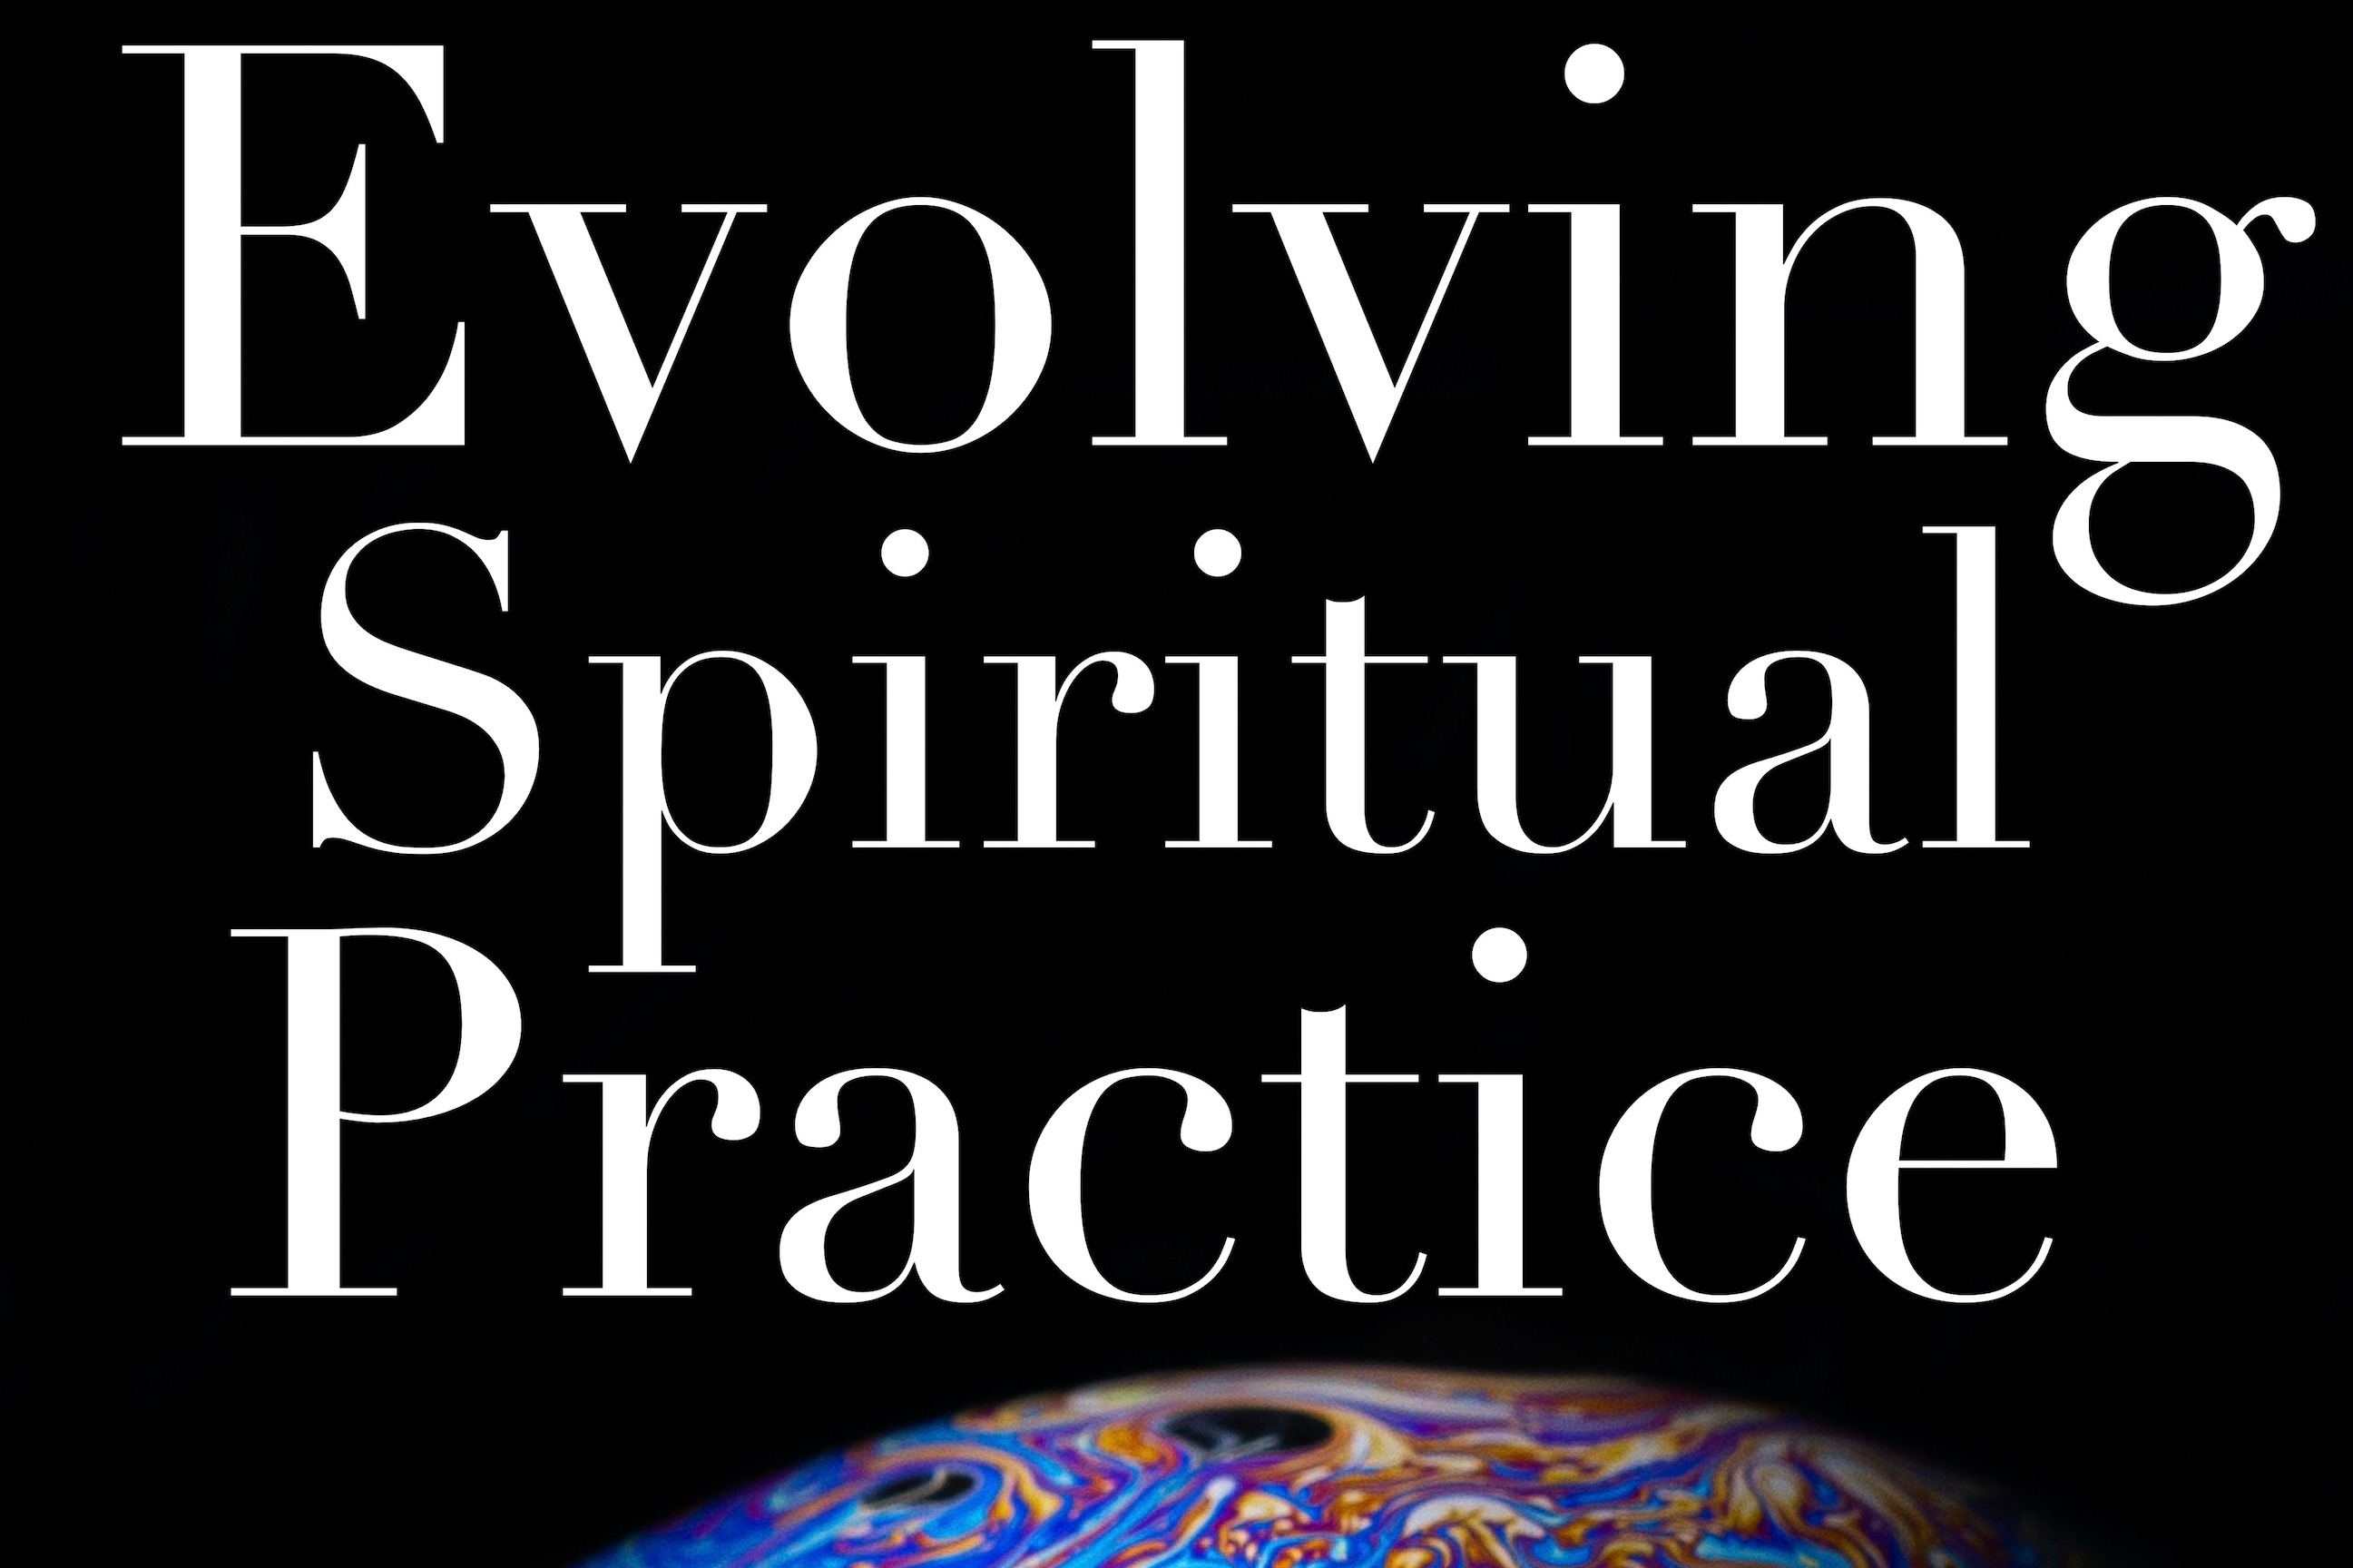 http://bencalder.co.uk/assets/gallery/blog-30/evolving_spiritual_practice_logo_smaller_.jpg